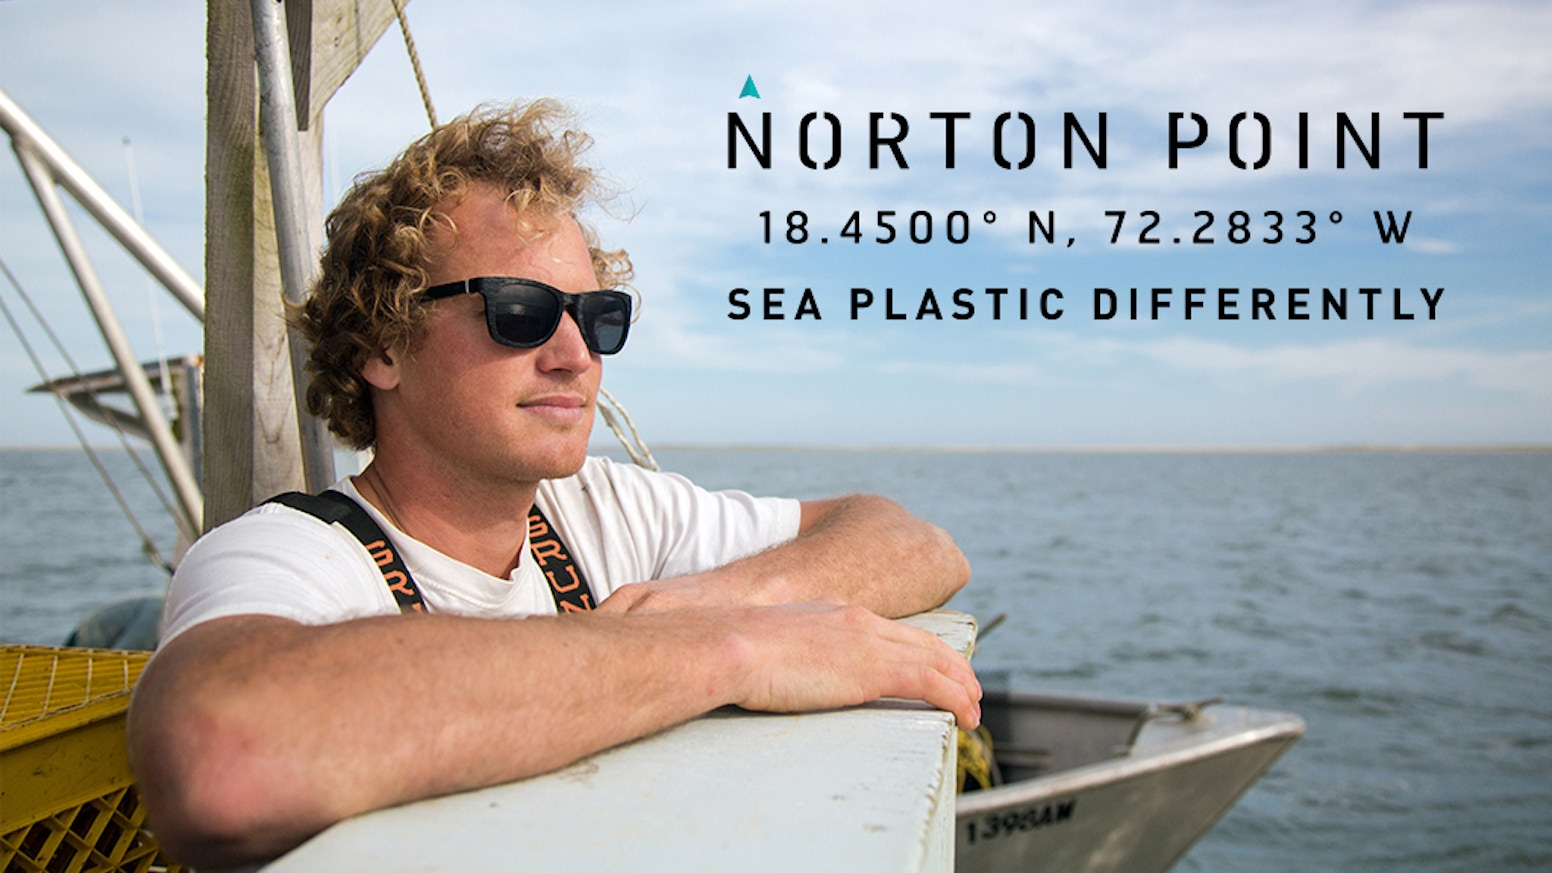 c3f066d8a8e2 Cleaning our oceans by recovering ocean plastic and turning it into  high-end sunglasses.